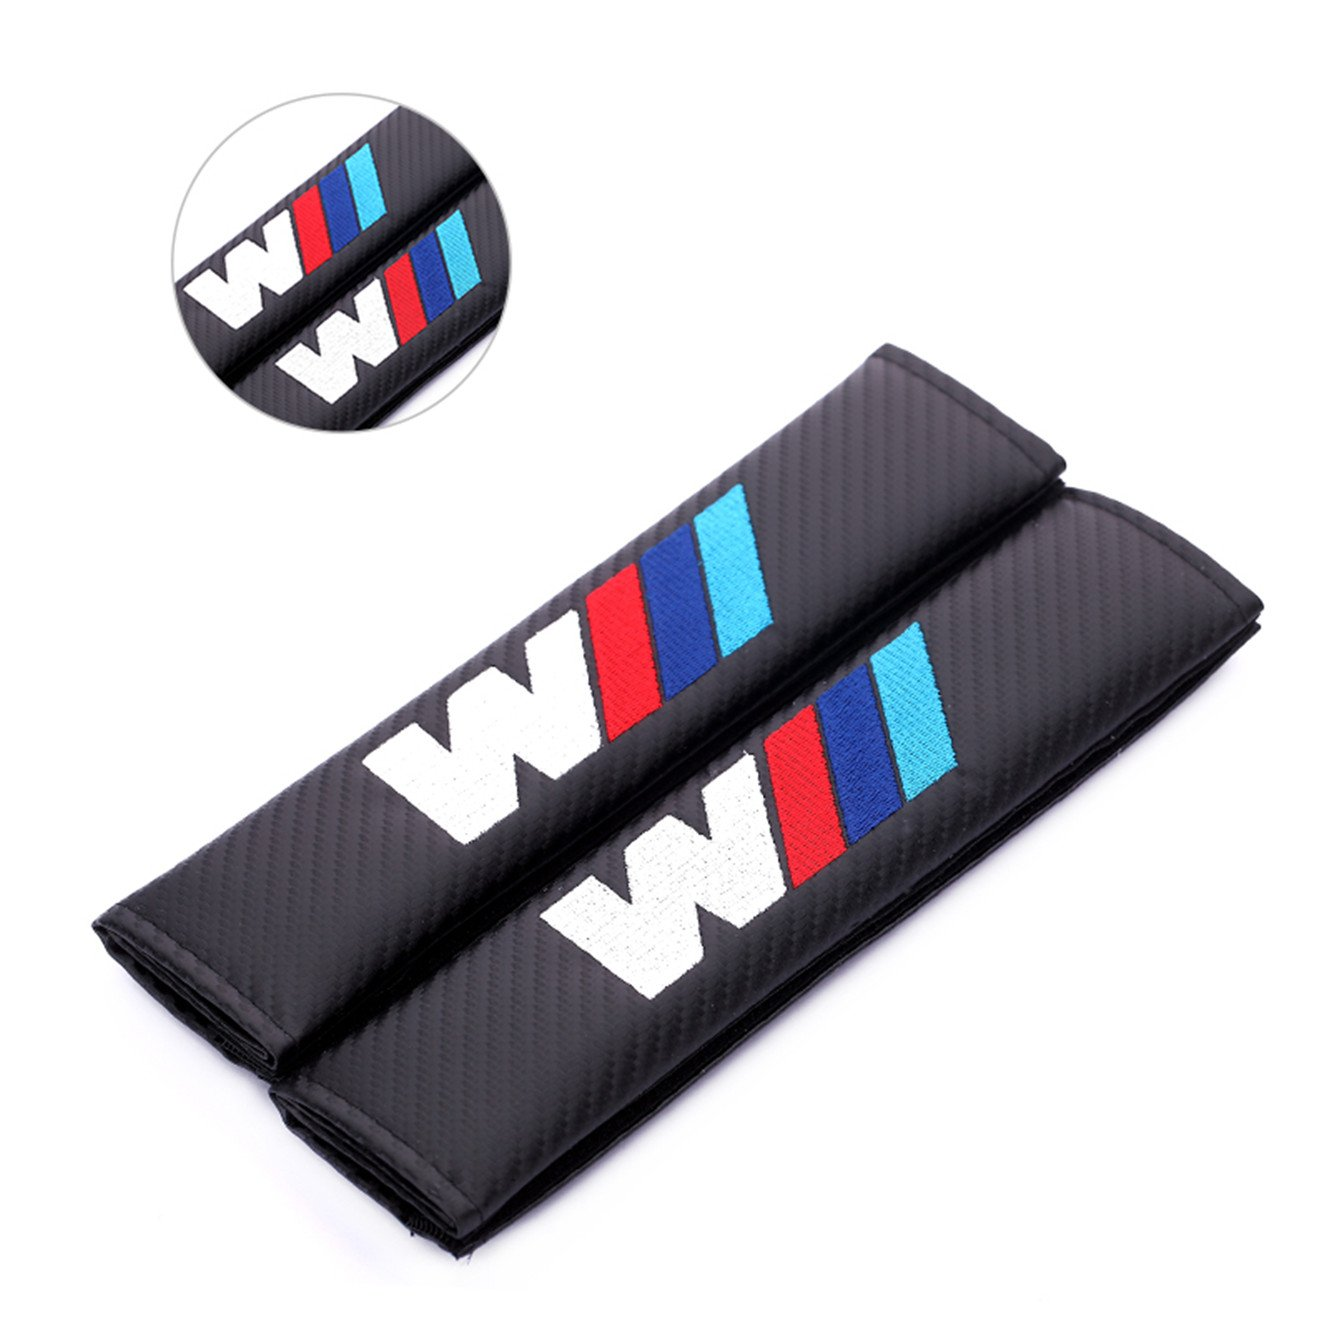 2pcs Carbon Fiber +Embroidery Car Seat Belt Cover Pad Shoulder Cushion For 3m bmw dengxiaofang01